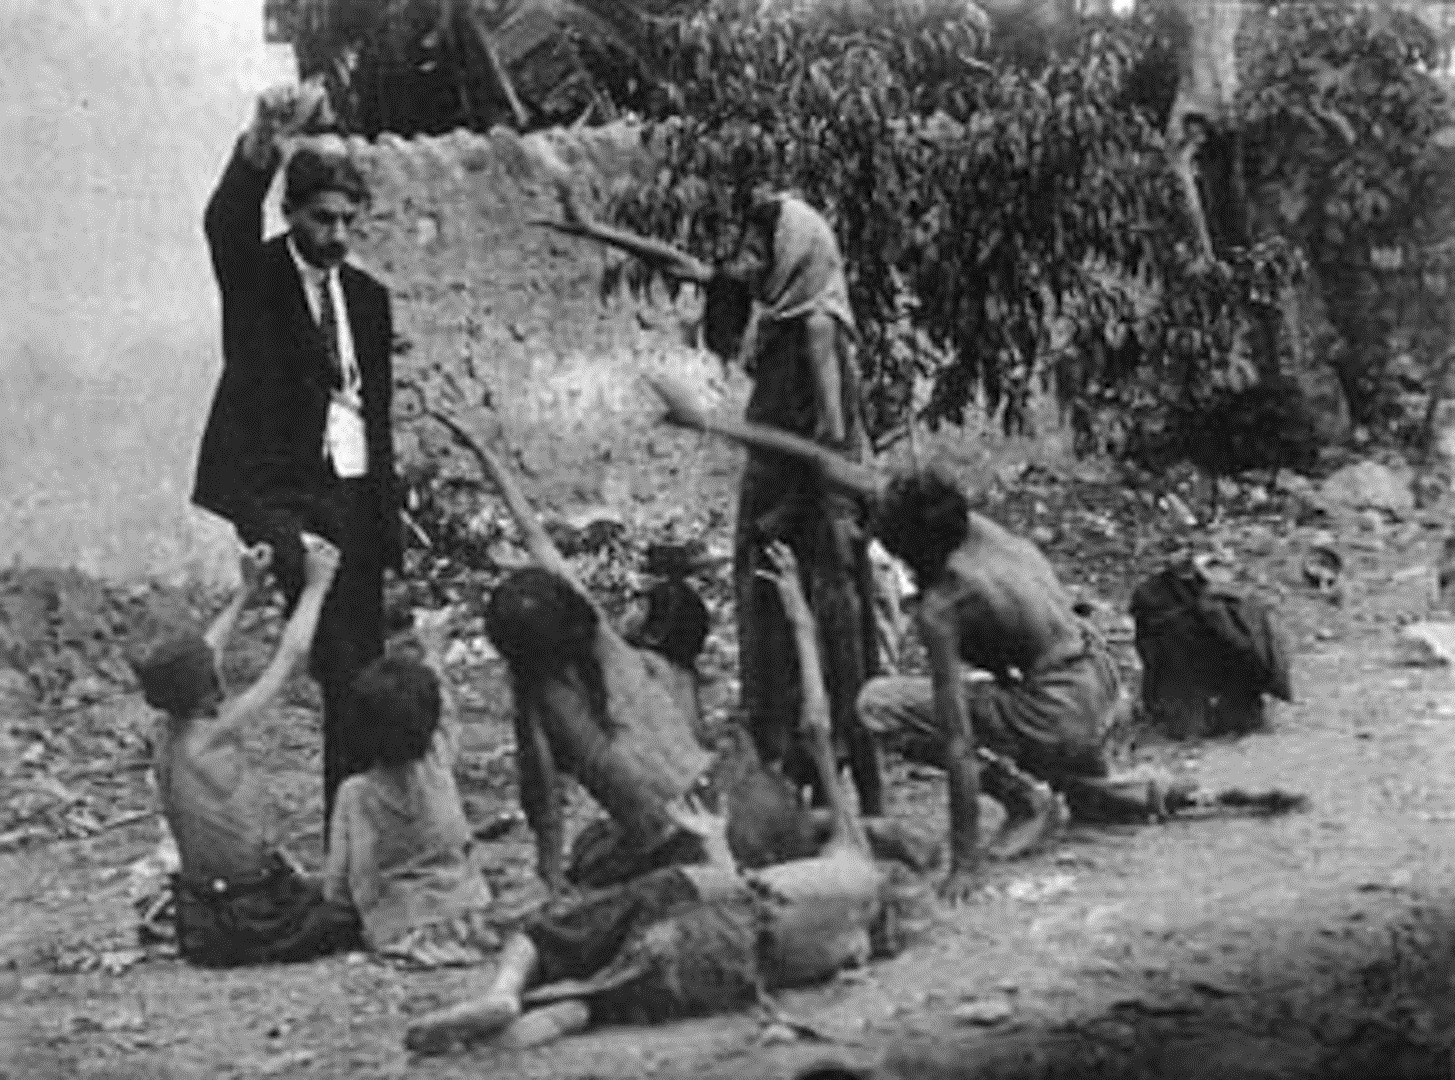 Turkish official teasing starved Armenian children with food during the Armenian Genocide (1915)